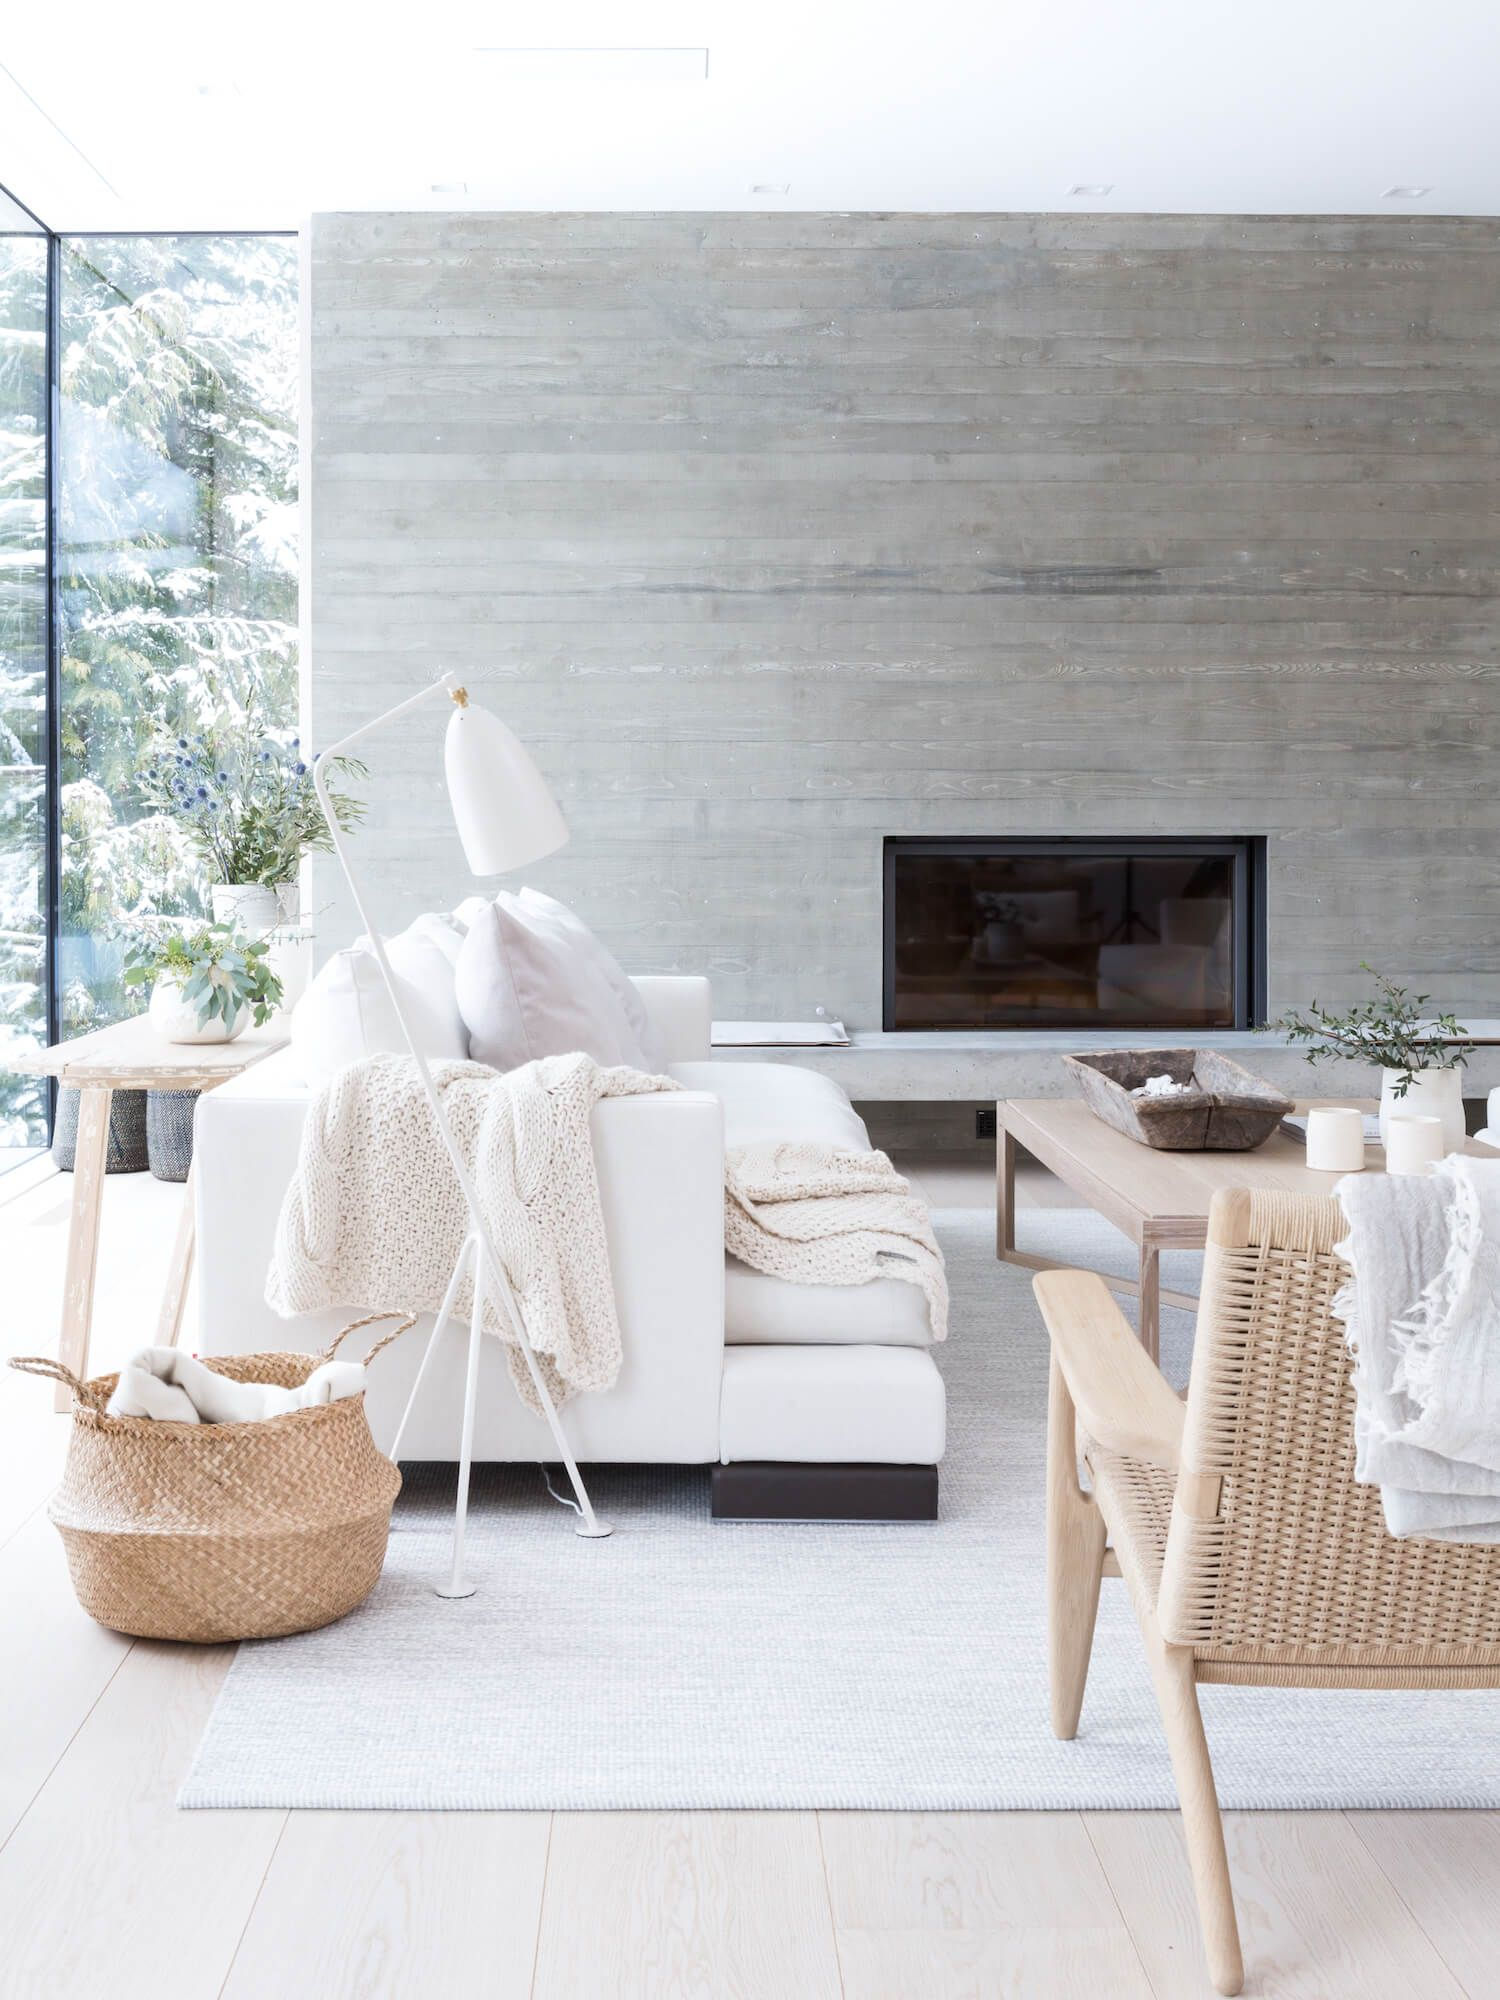 The Est Collection: Ski Chalets | Whistler, Burgers and Living rooms